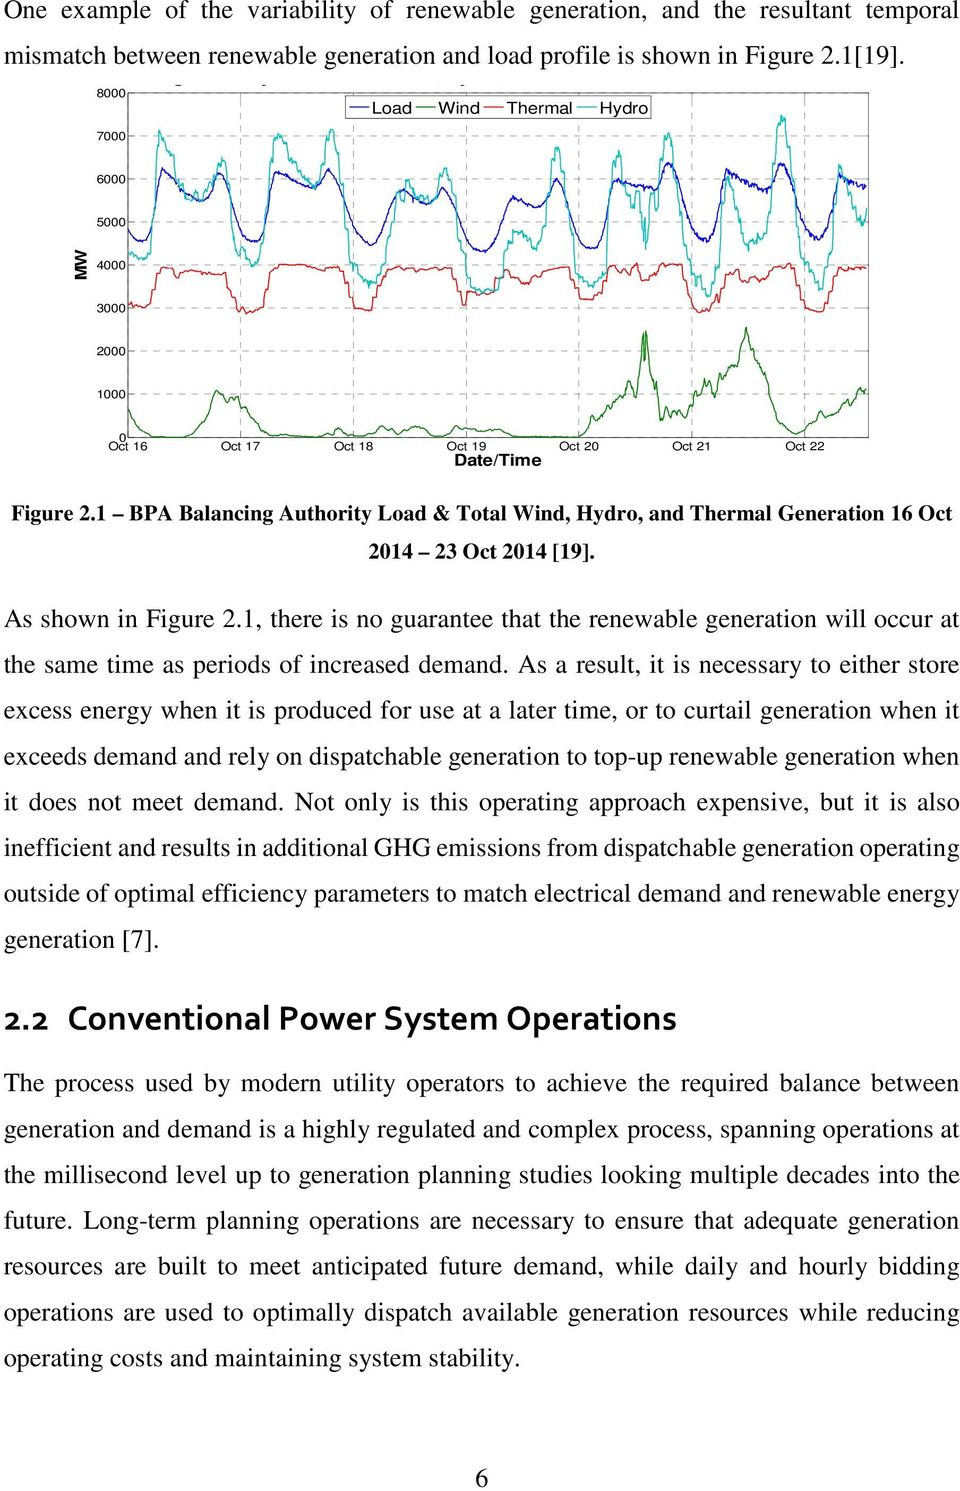 Figure 2.1 BPA Balancing Authority Load & Total Wind, Hydro, and Thermal Generation 16 Oct 214 23 Oct 214 [19]. As shown in Figure 2.